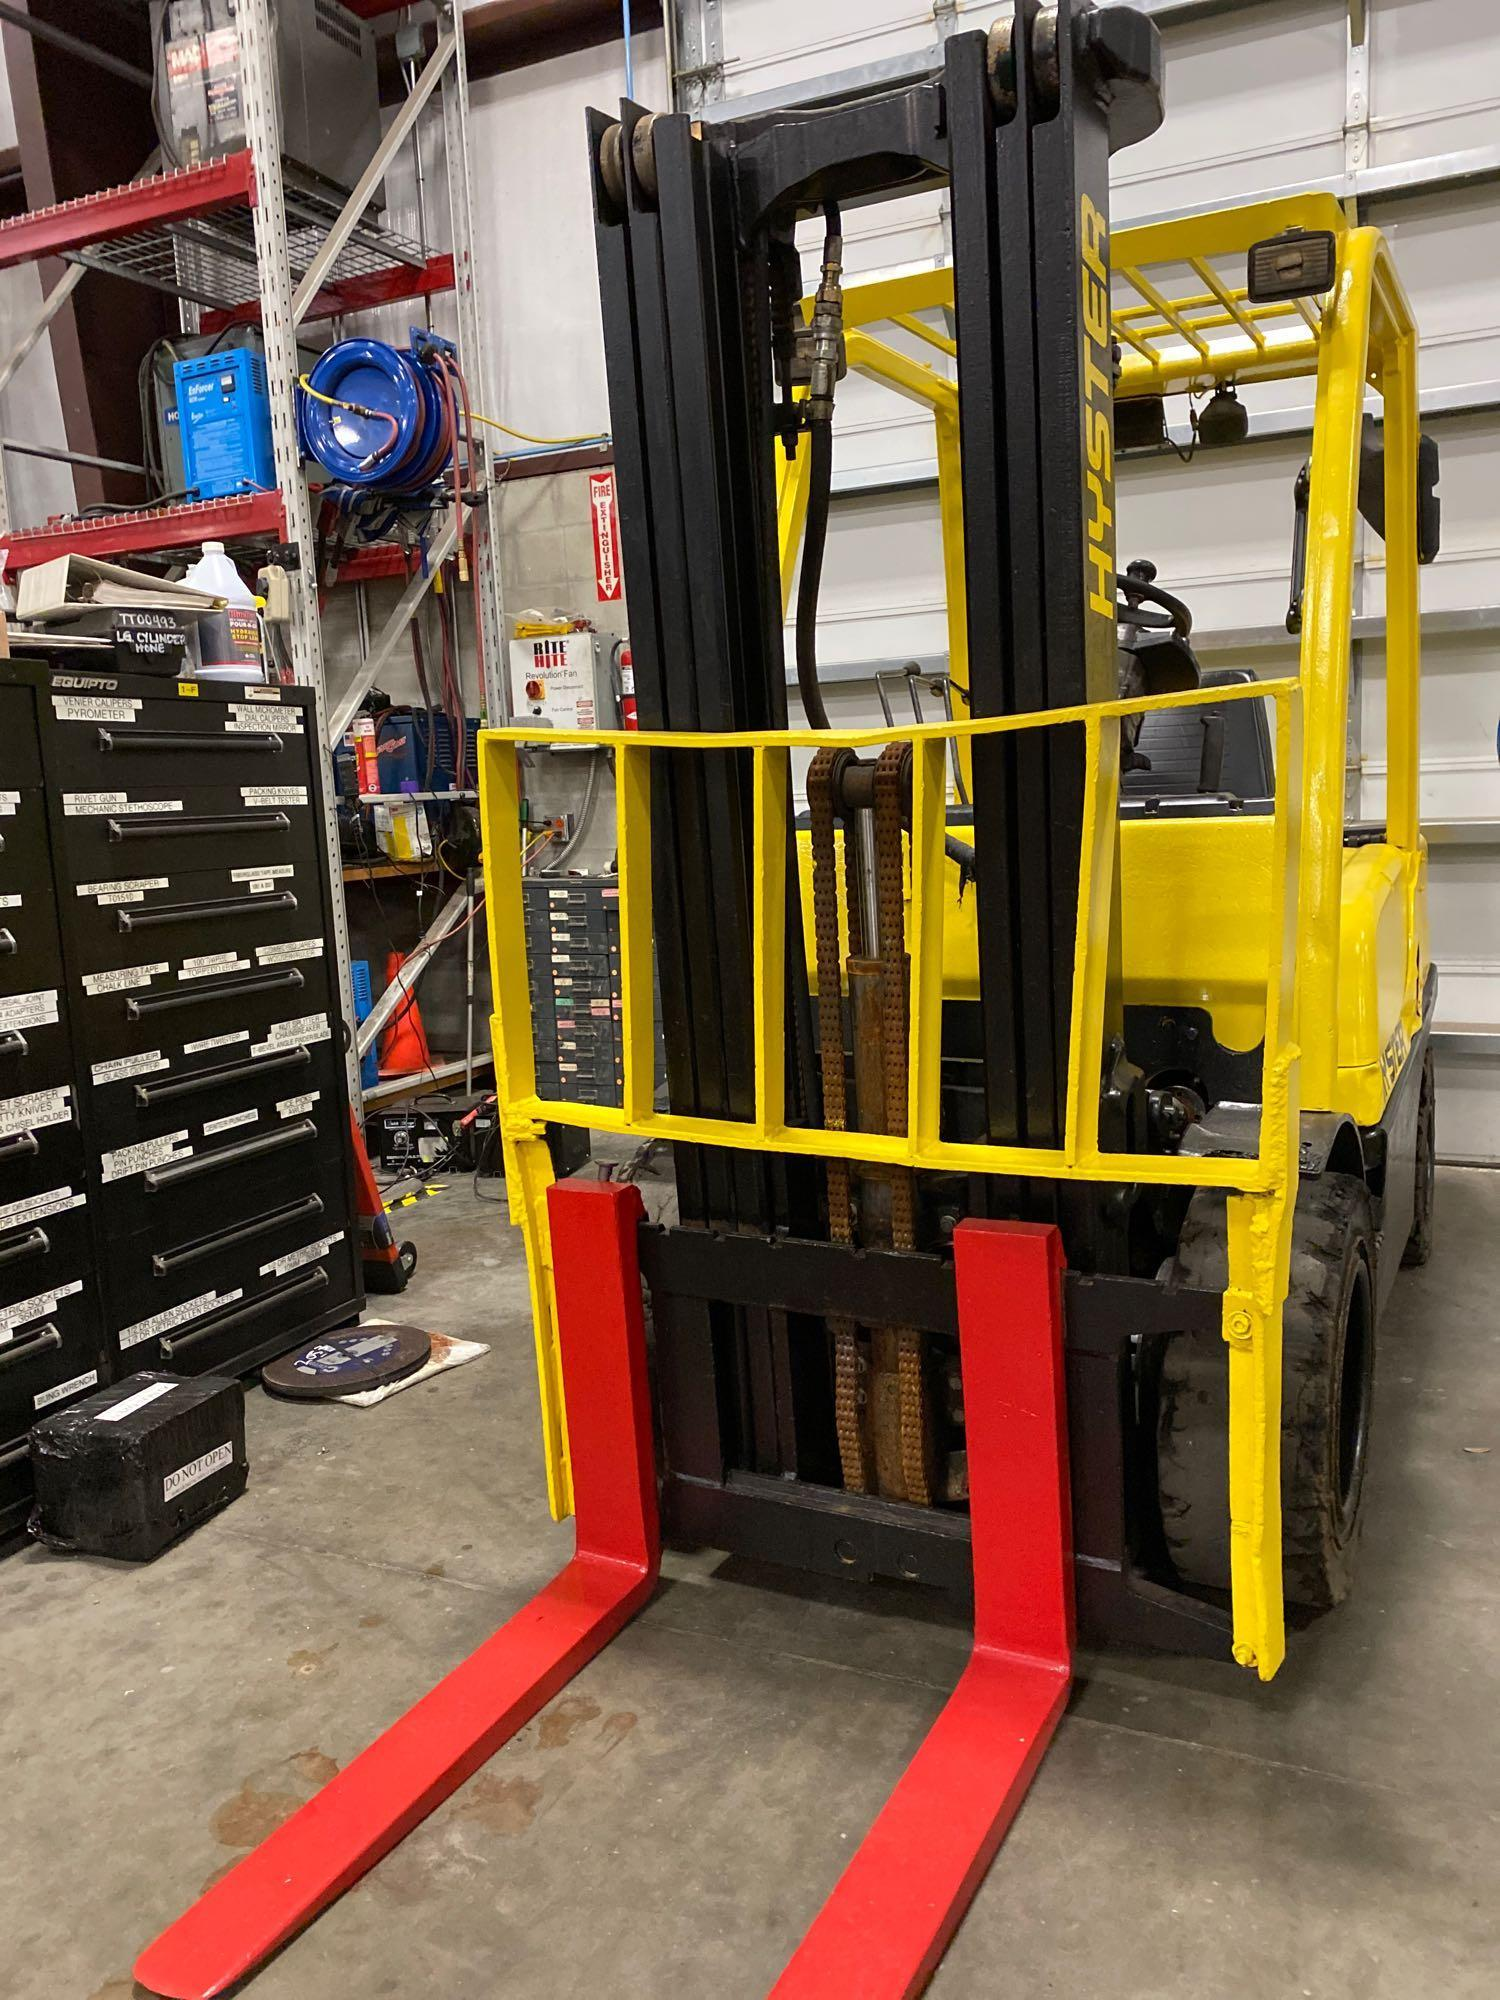 """HYSTER H70FT FORKLIFT, APPROX. 7,000 LB CAPACITY, 181.9"""" HEIGHT CAP, TILT, RUNS AND OPERATES - Image 7 of 10"""